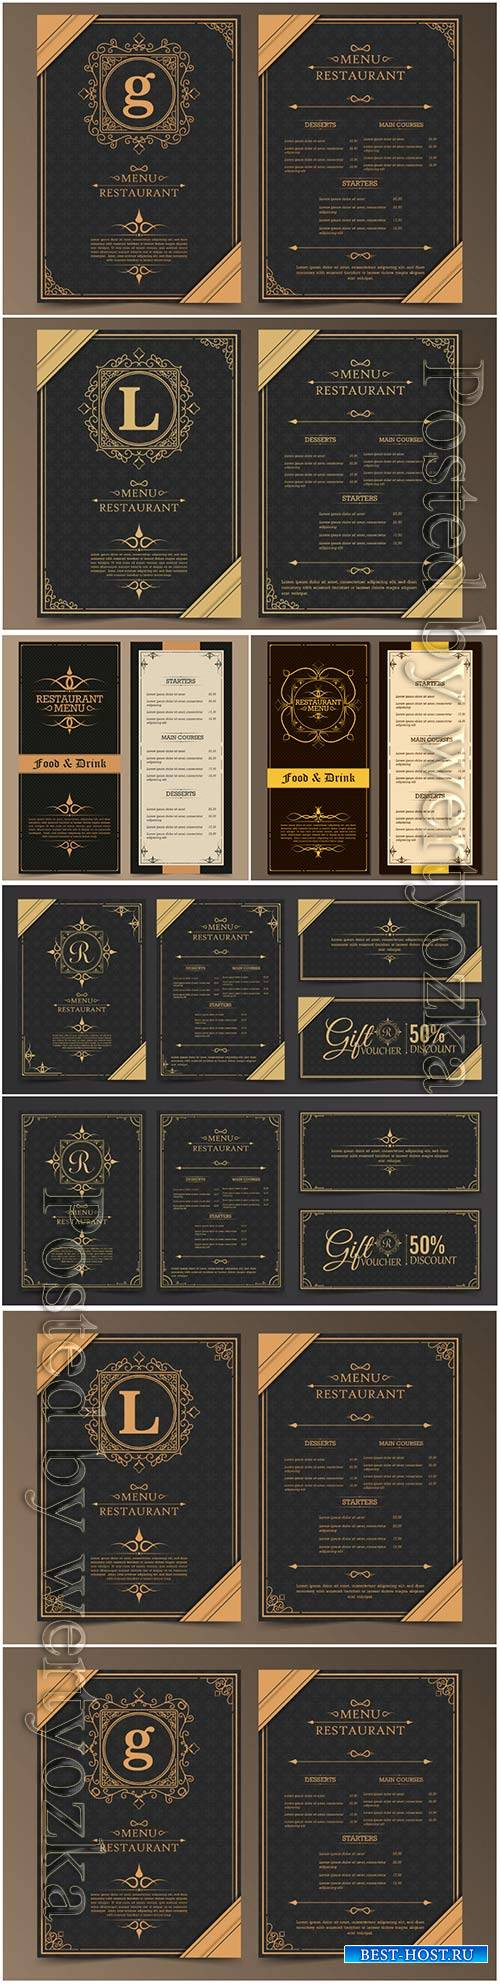 Menu layout with ornamental elements